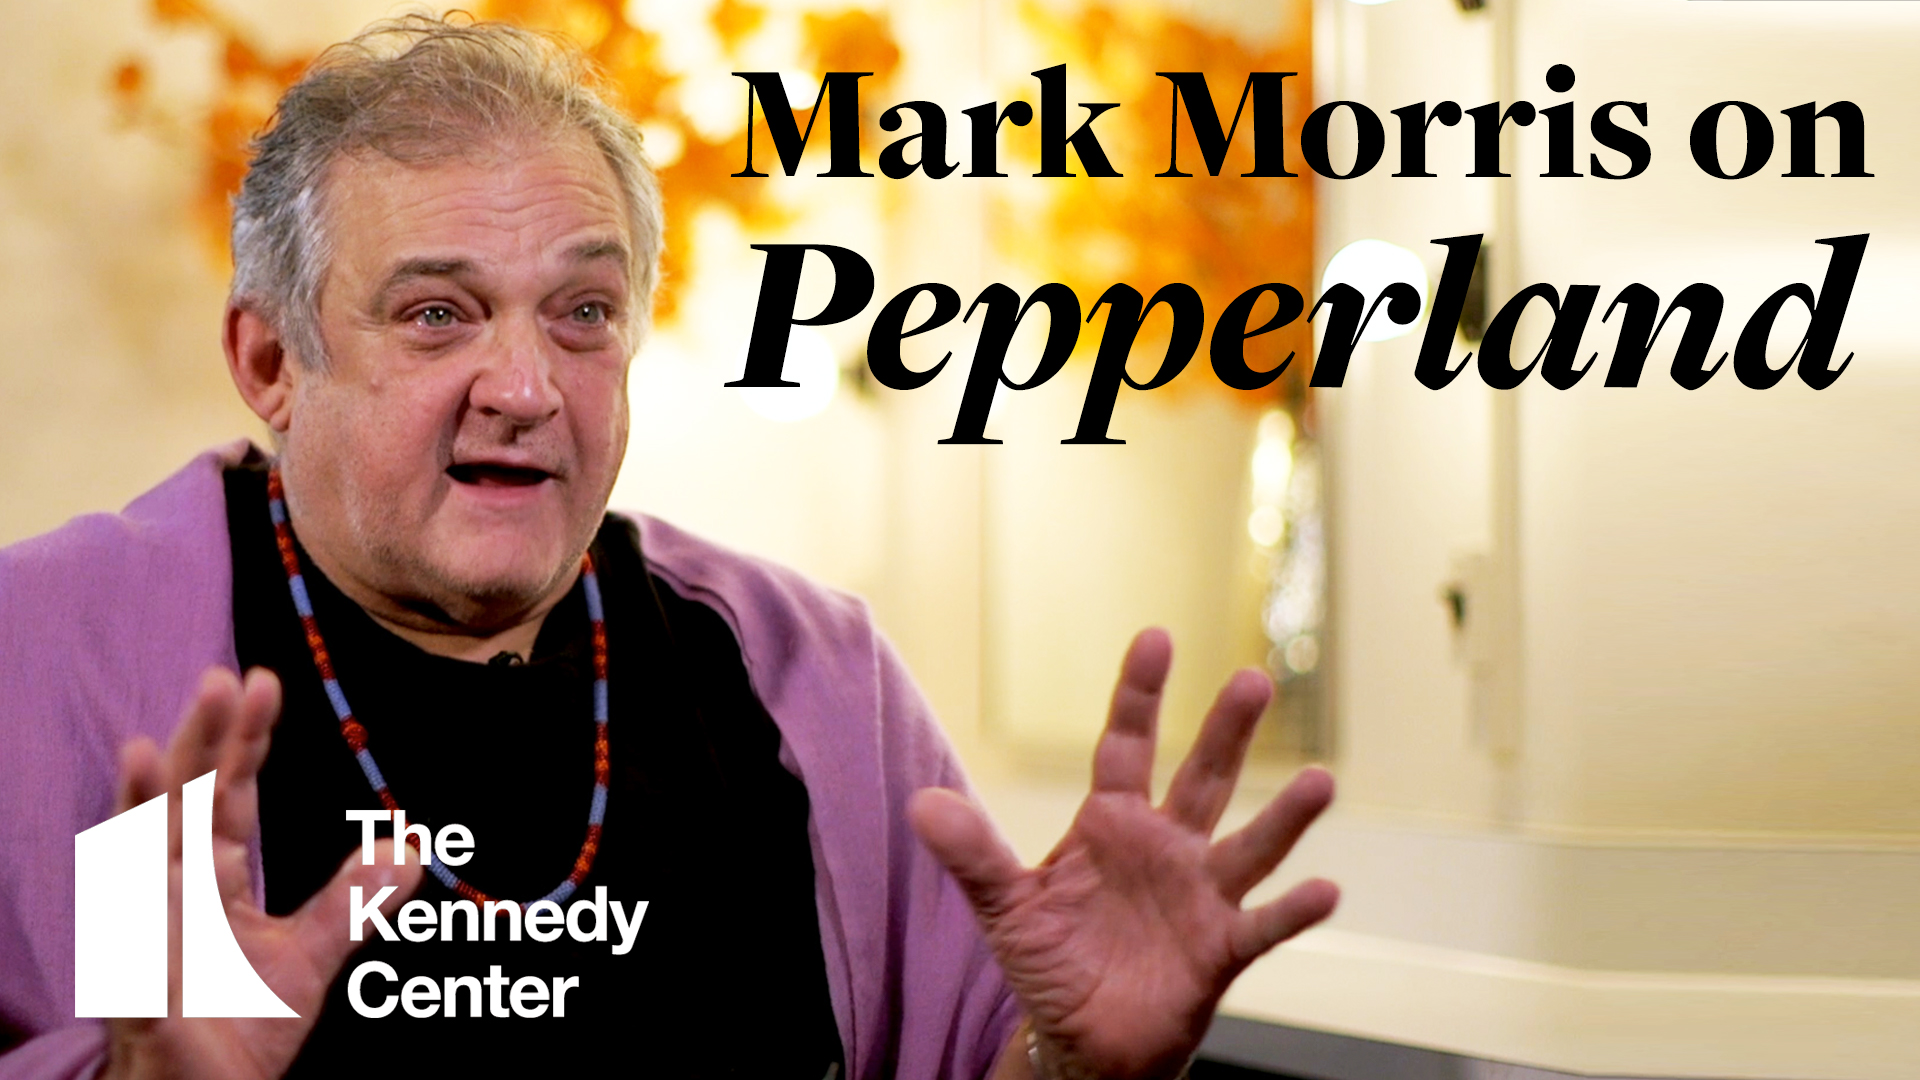 Mark Morris on Pepperland | The Kennedy Center